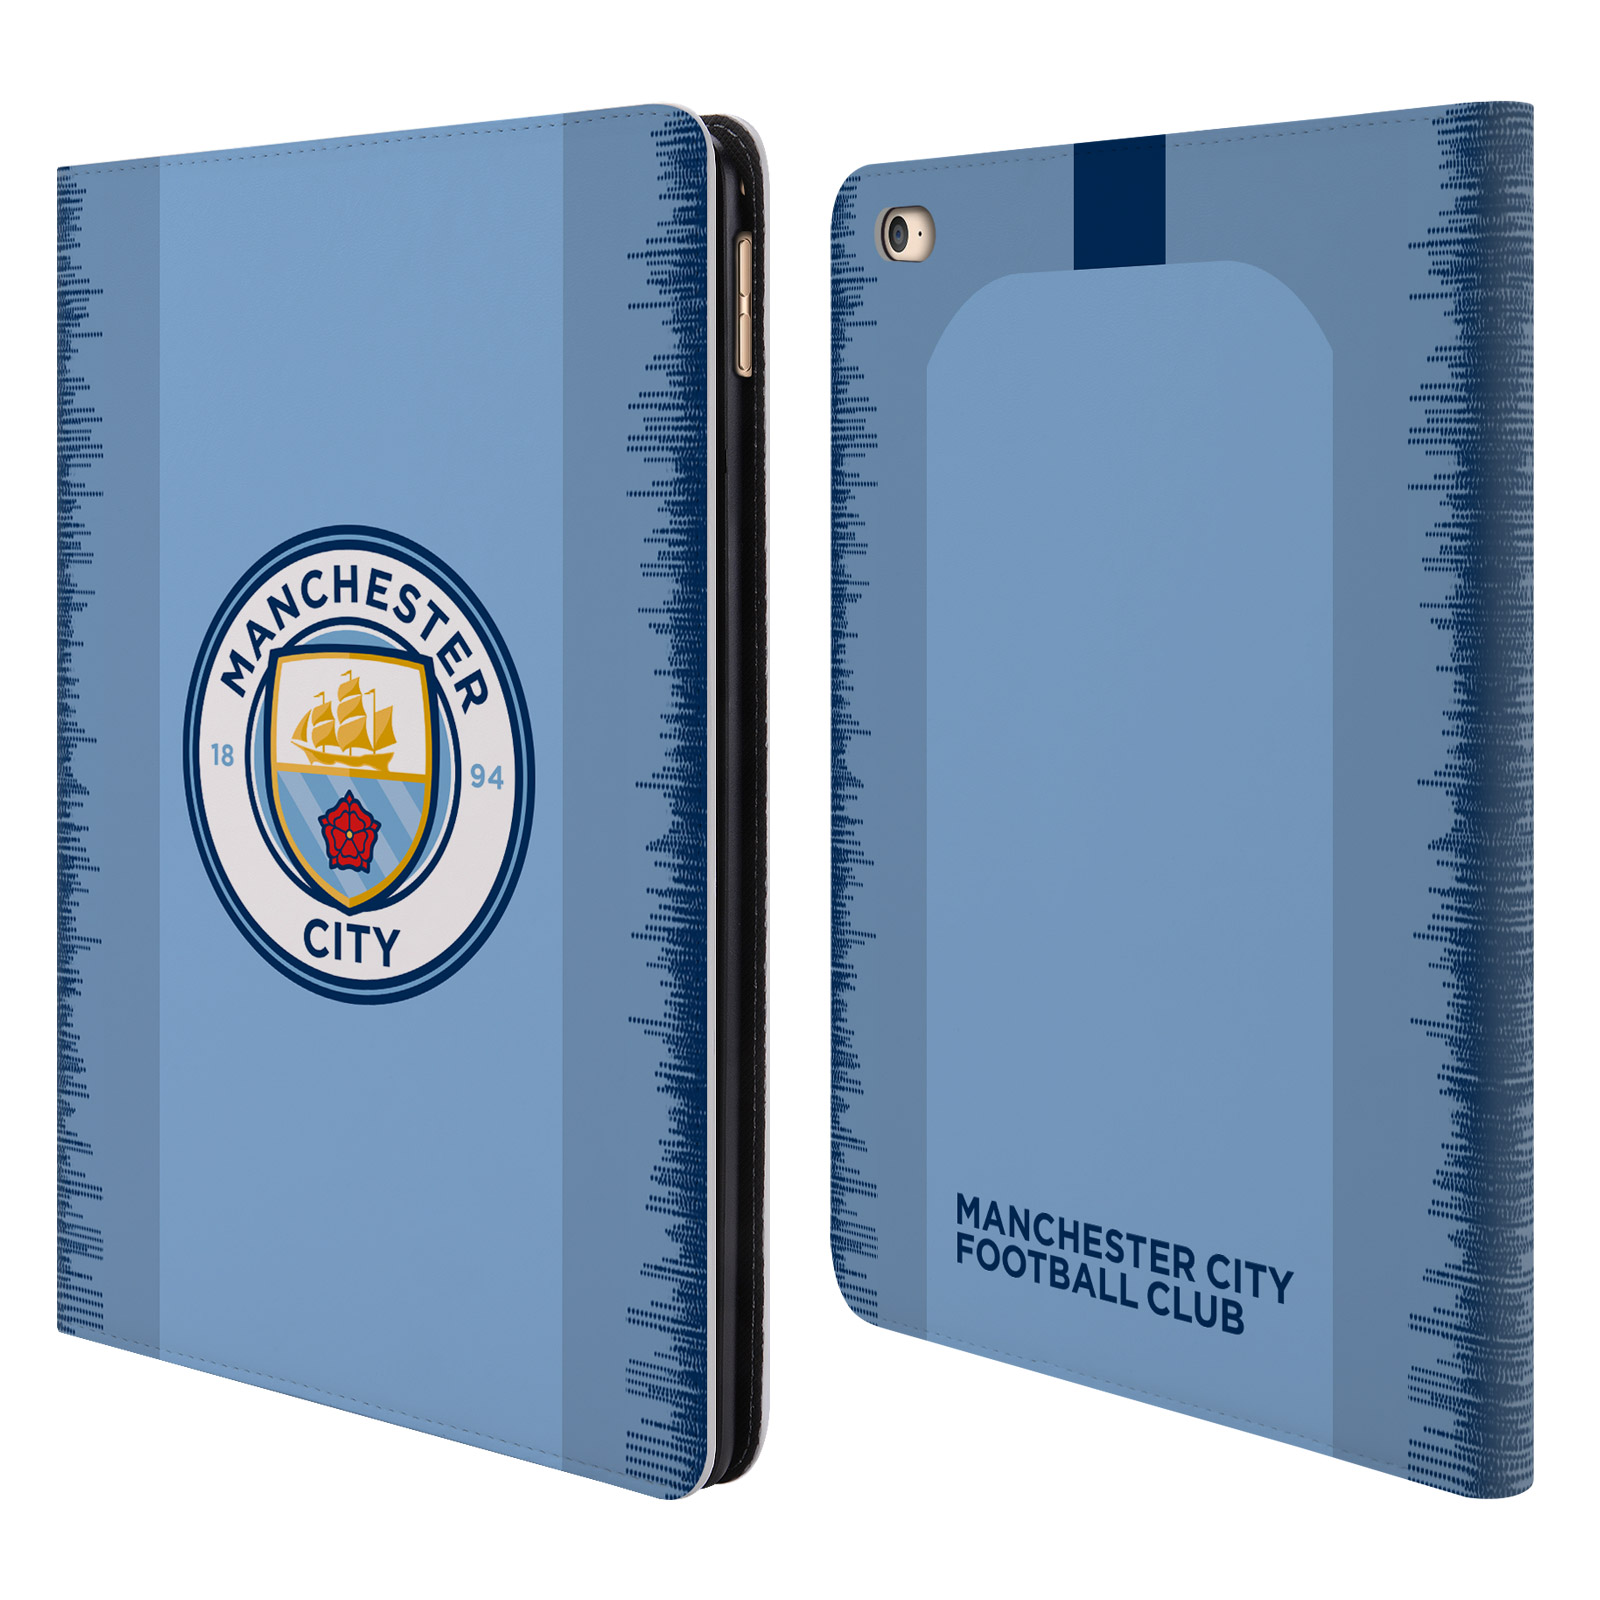 MANCHESTER-CITY-MAN-CITY-FC-2018-19-BADGE-KIT-LEATHER-BOOK-CASE-FOR-APPLE-iPAD